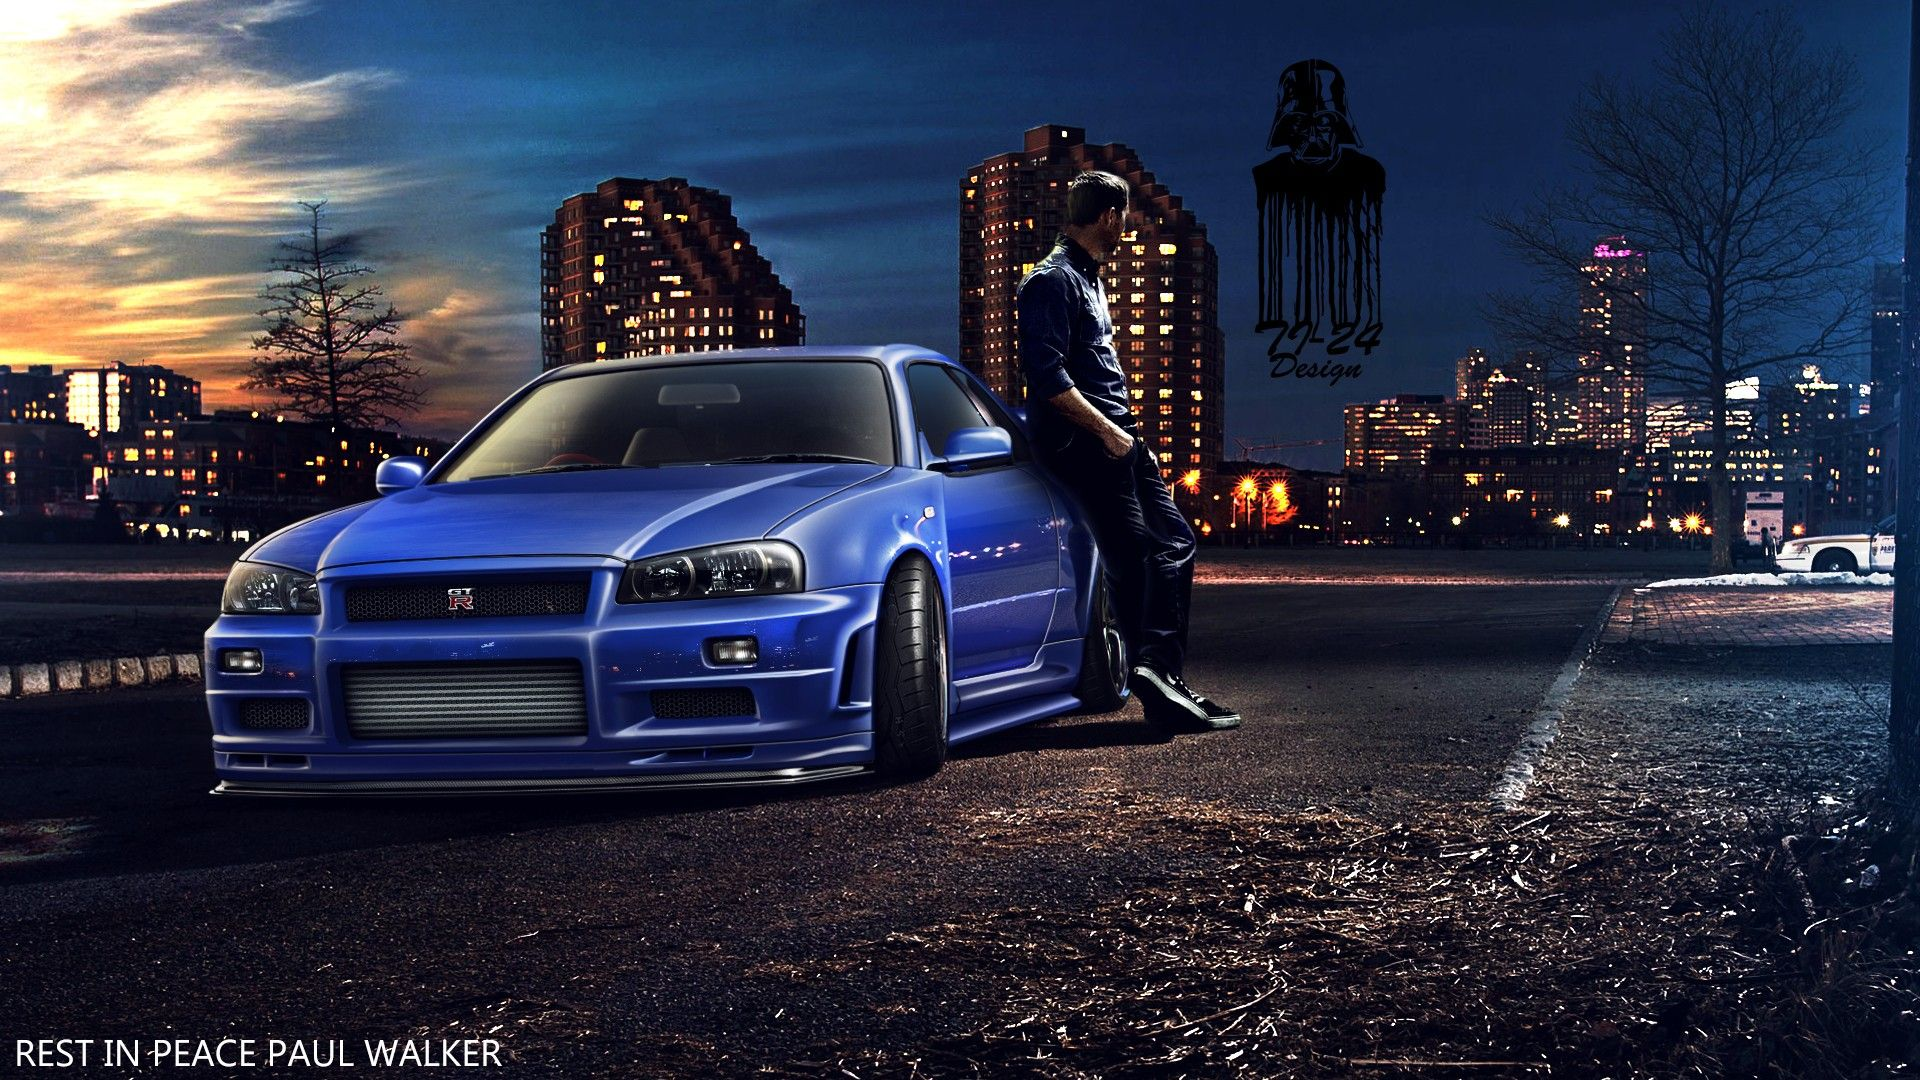 Fast and furious car images wallpapers for free download about